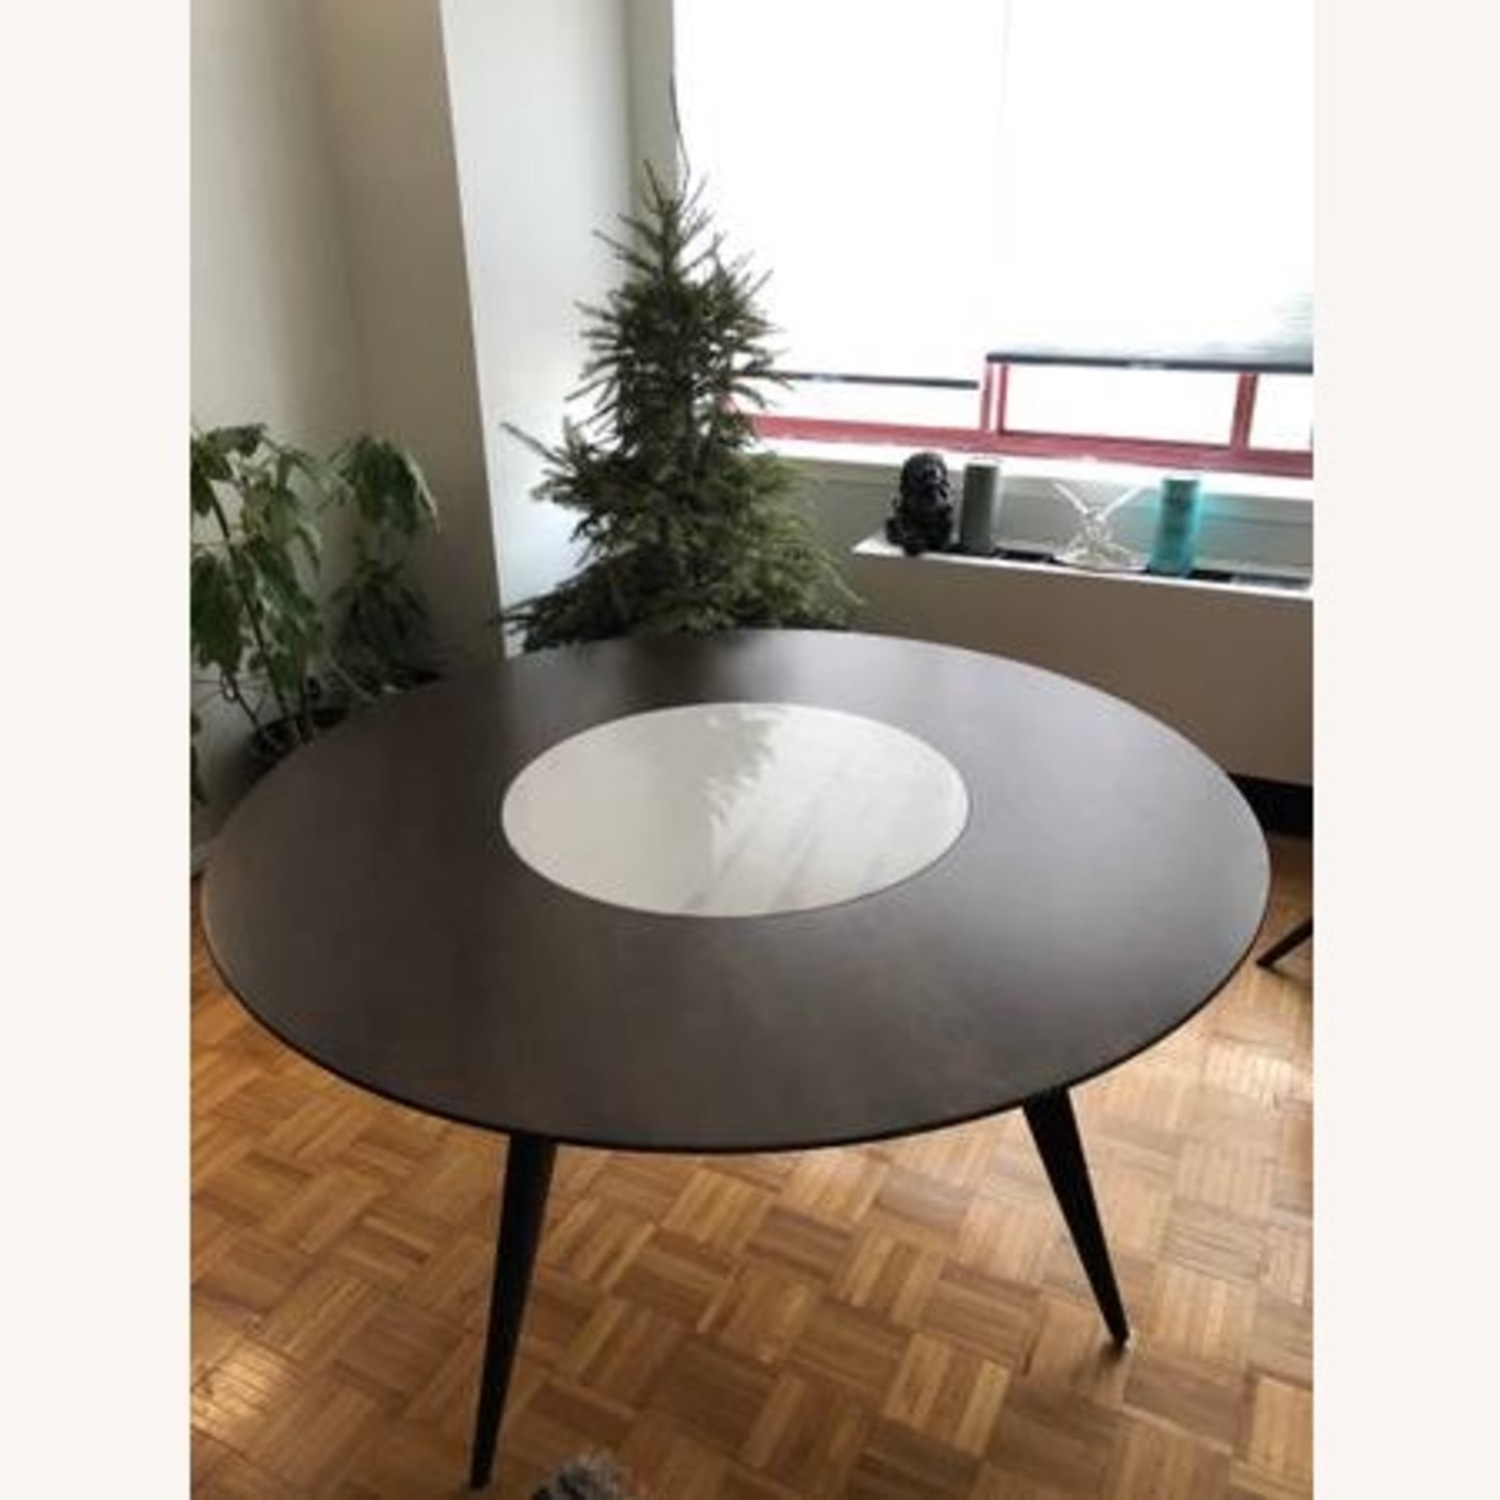 West Elm Turner Lazy Susan Dining Table - image-1